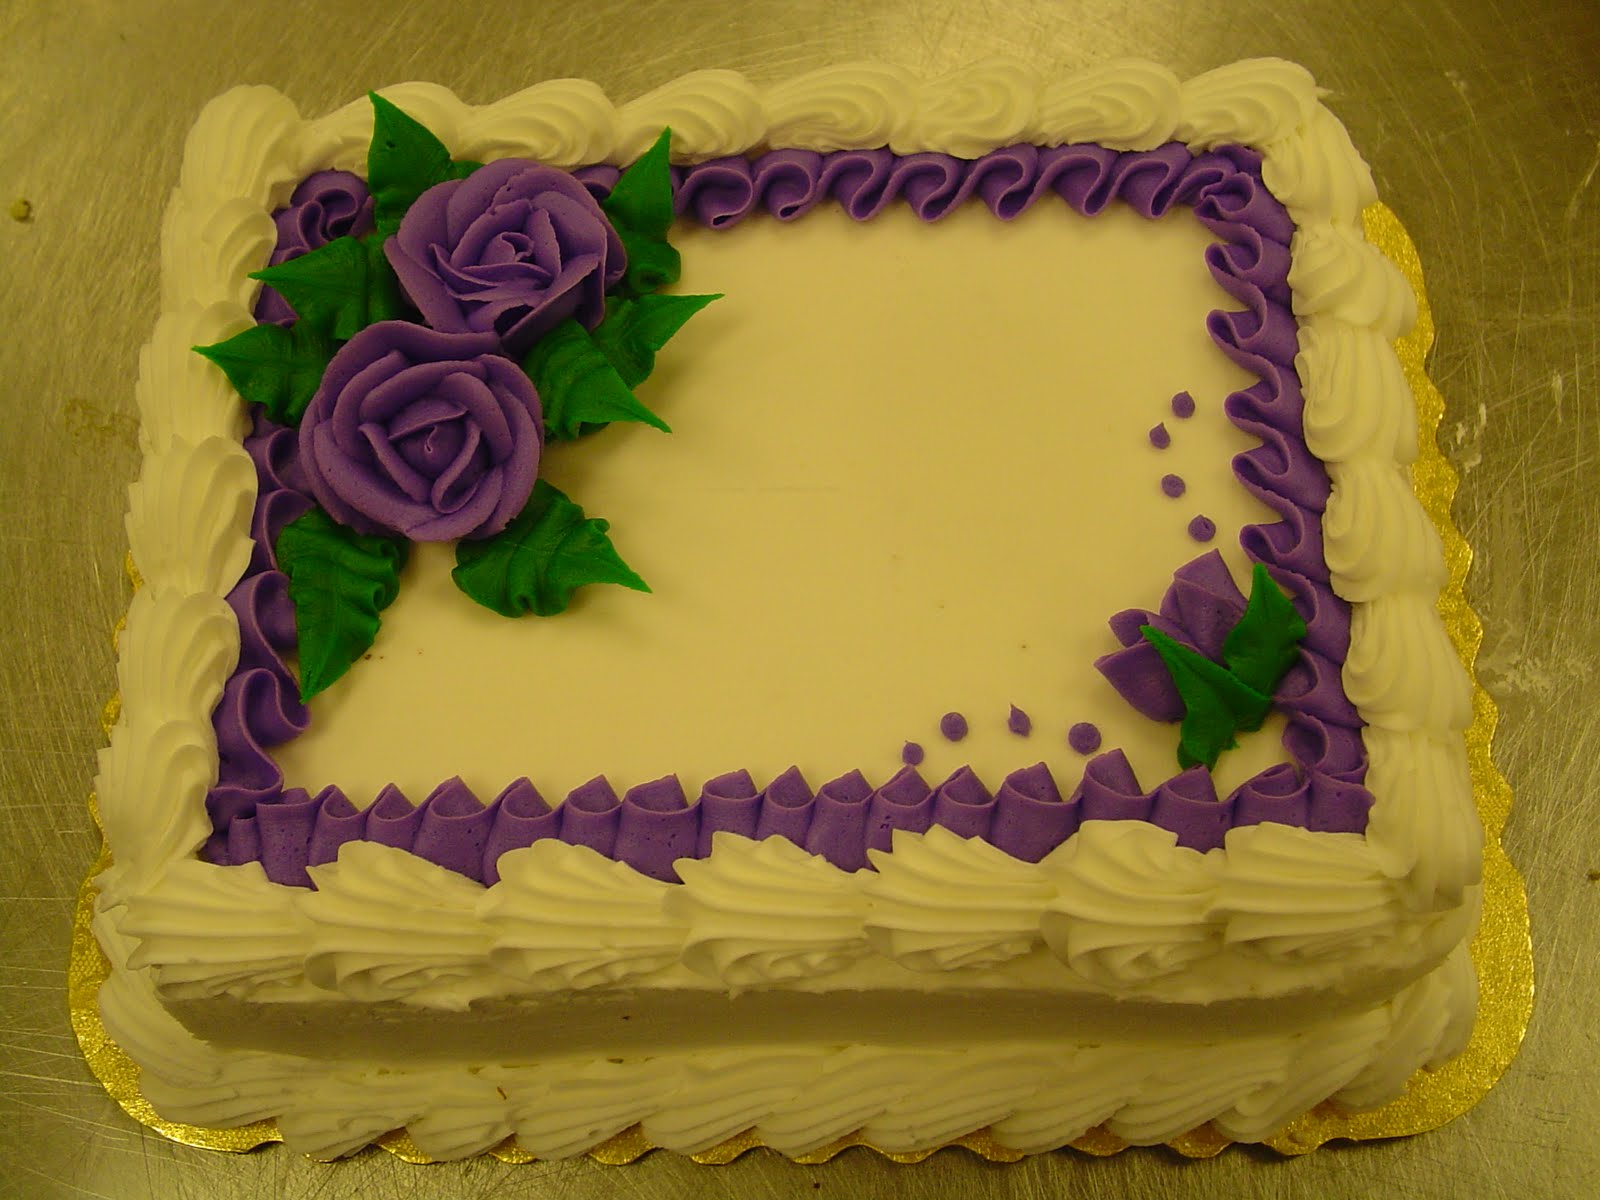 Cake Decorating Border Ideas : Becky s Sweets: Bakery Sheet Cakes